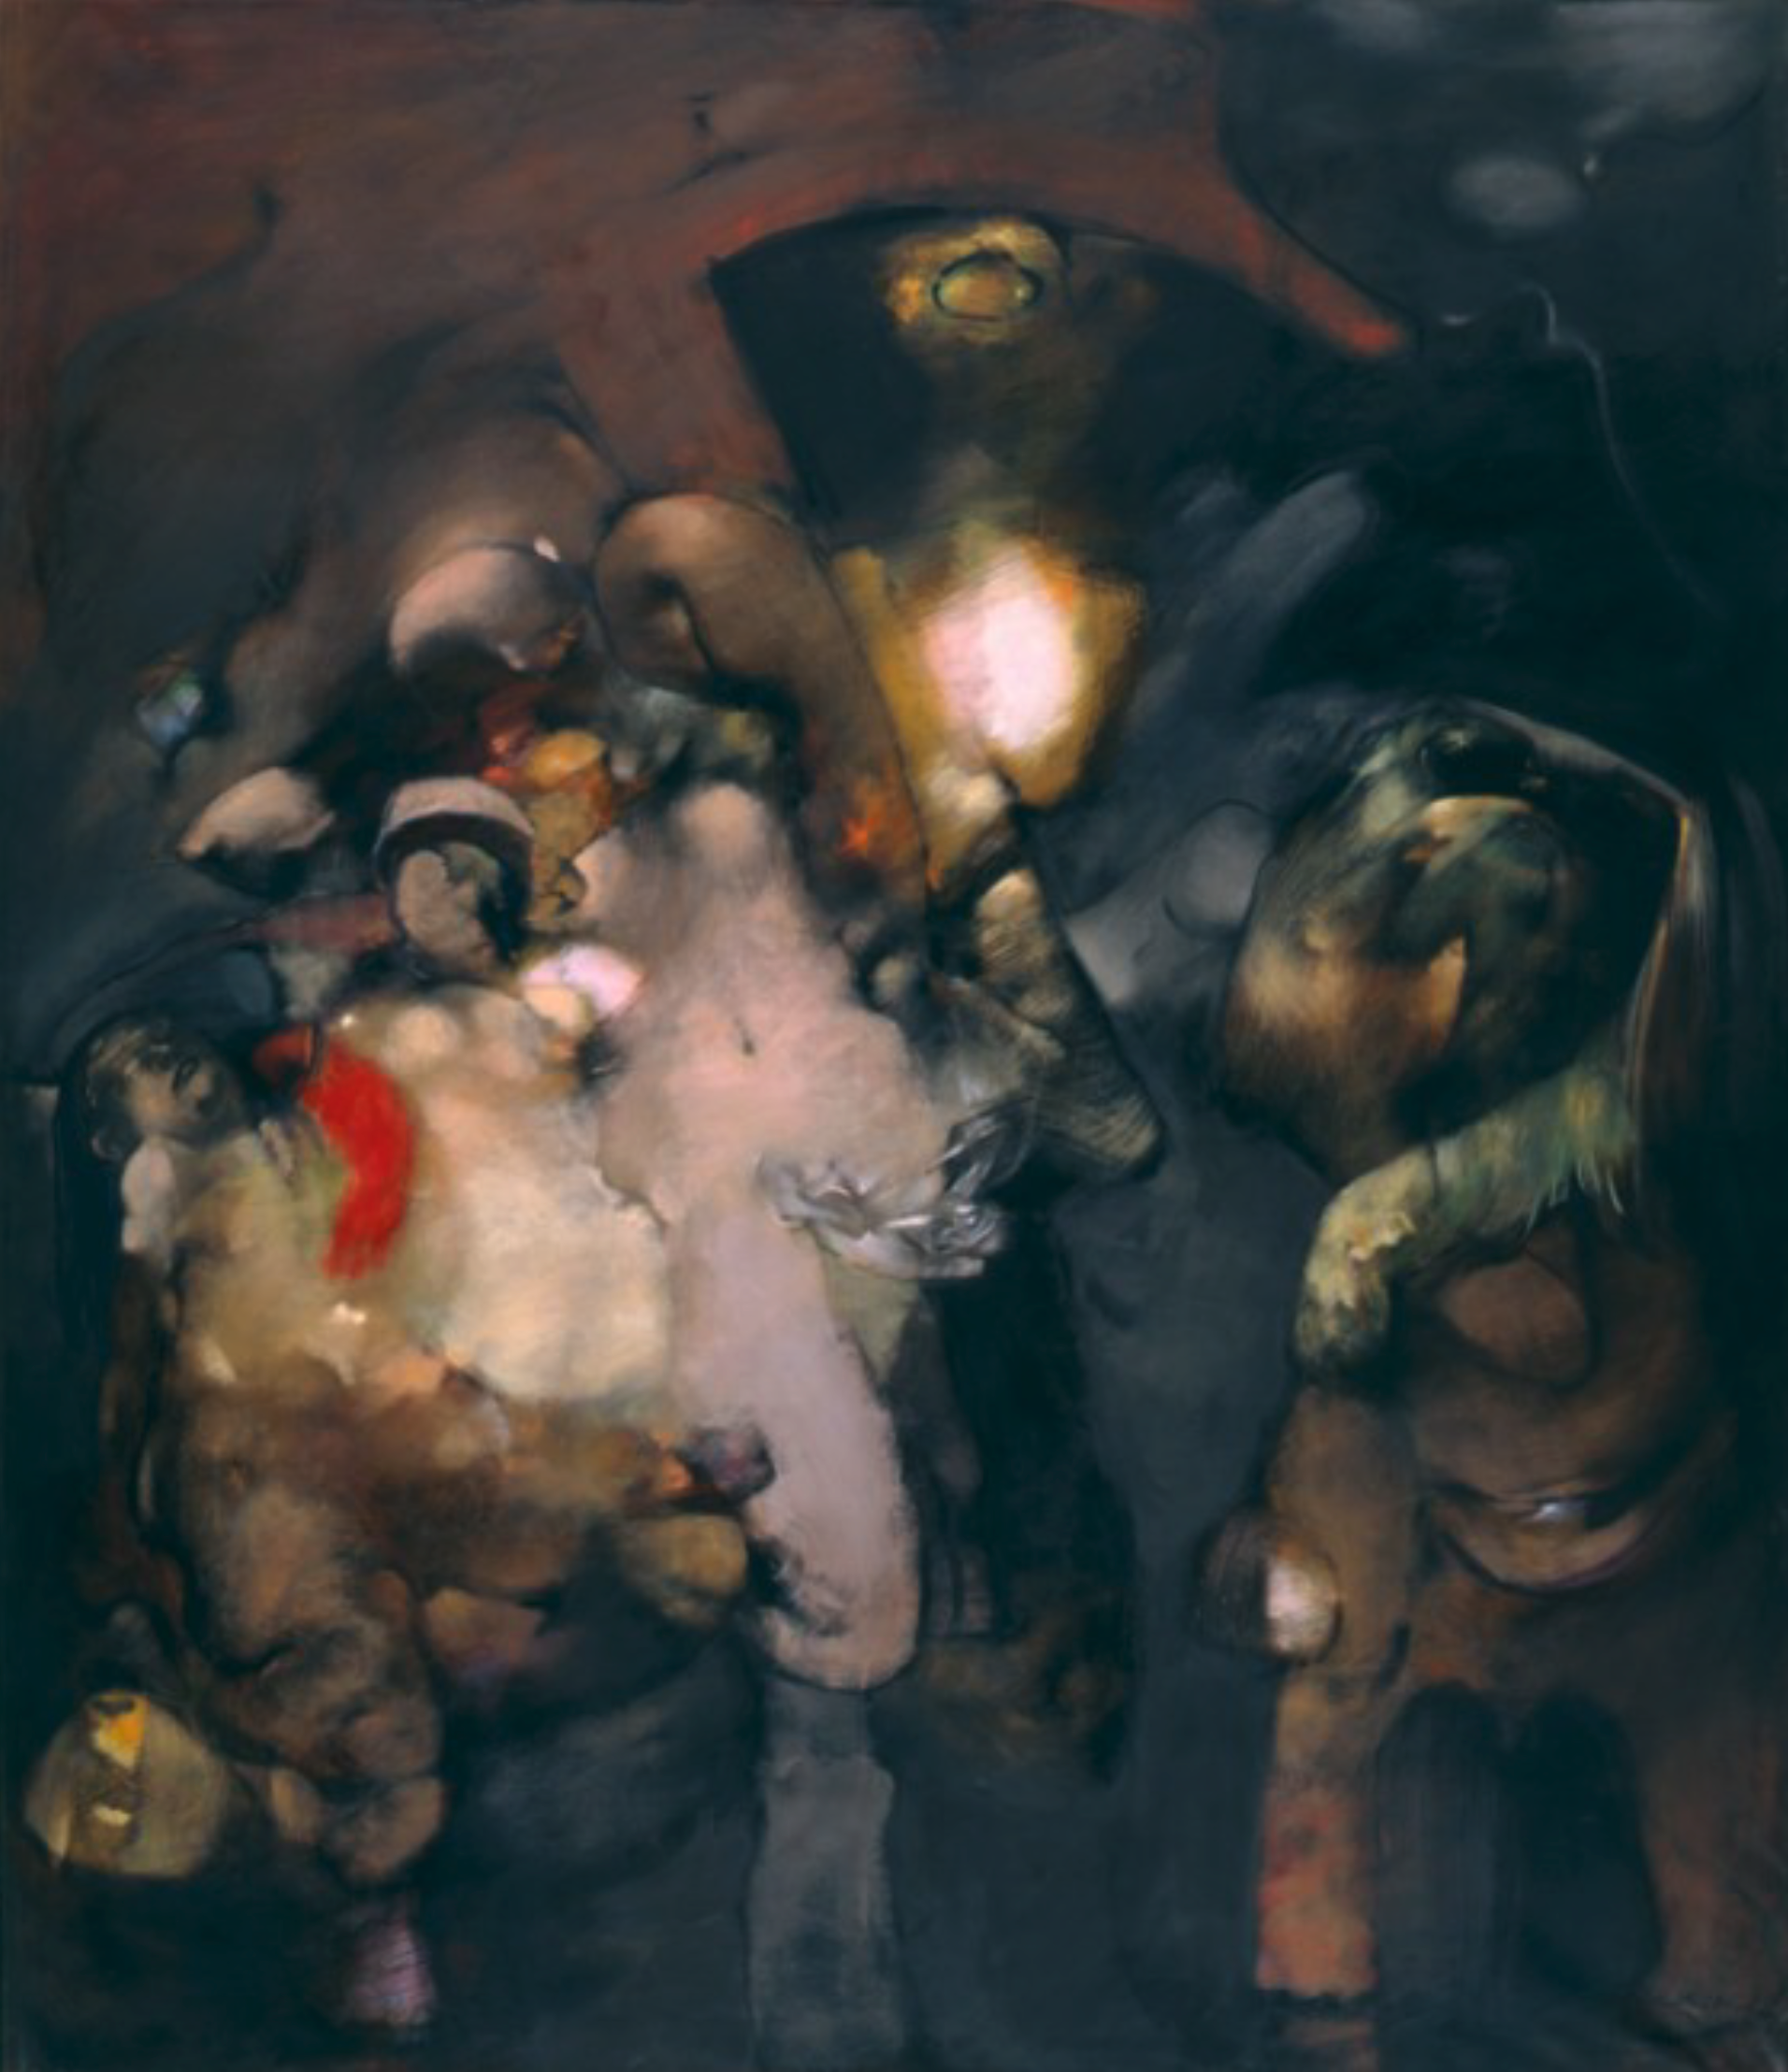 Dorothea Tanning,  Elles Se Detachent, Majestueuses (Majestically),  1965 - 1984, Oil on canvas, 71 3/4 x 61 1/4 inches (182.2 x 156 cm)